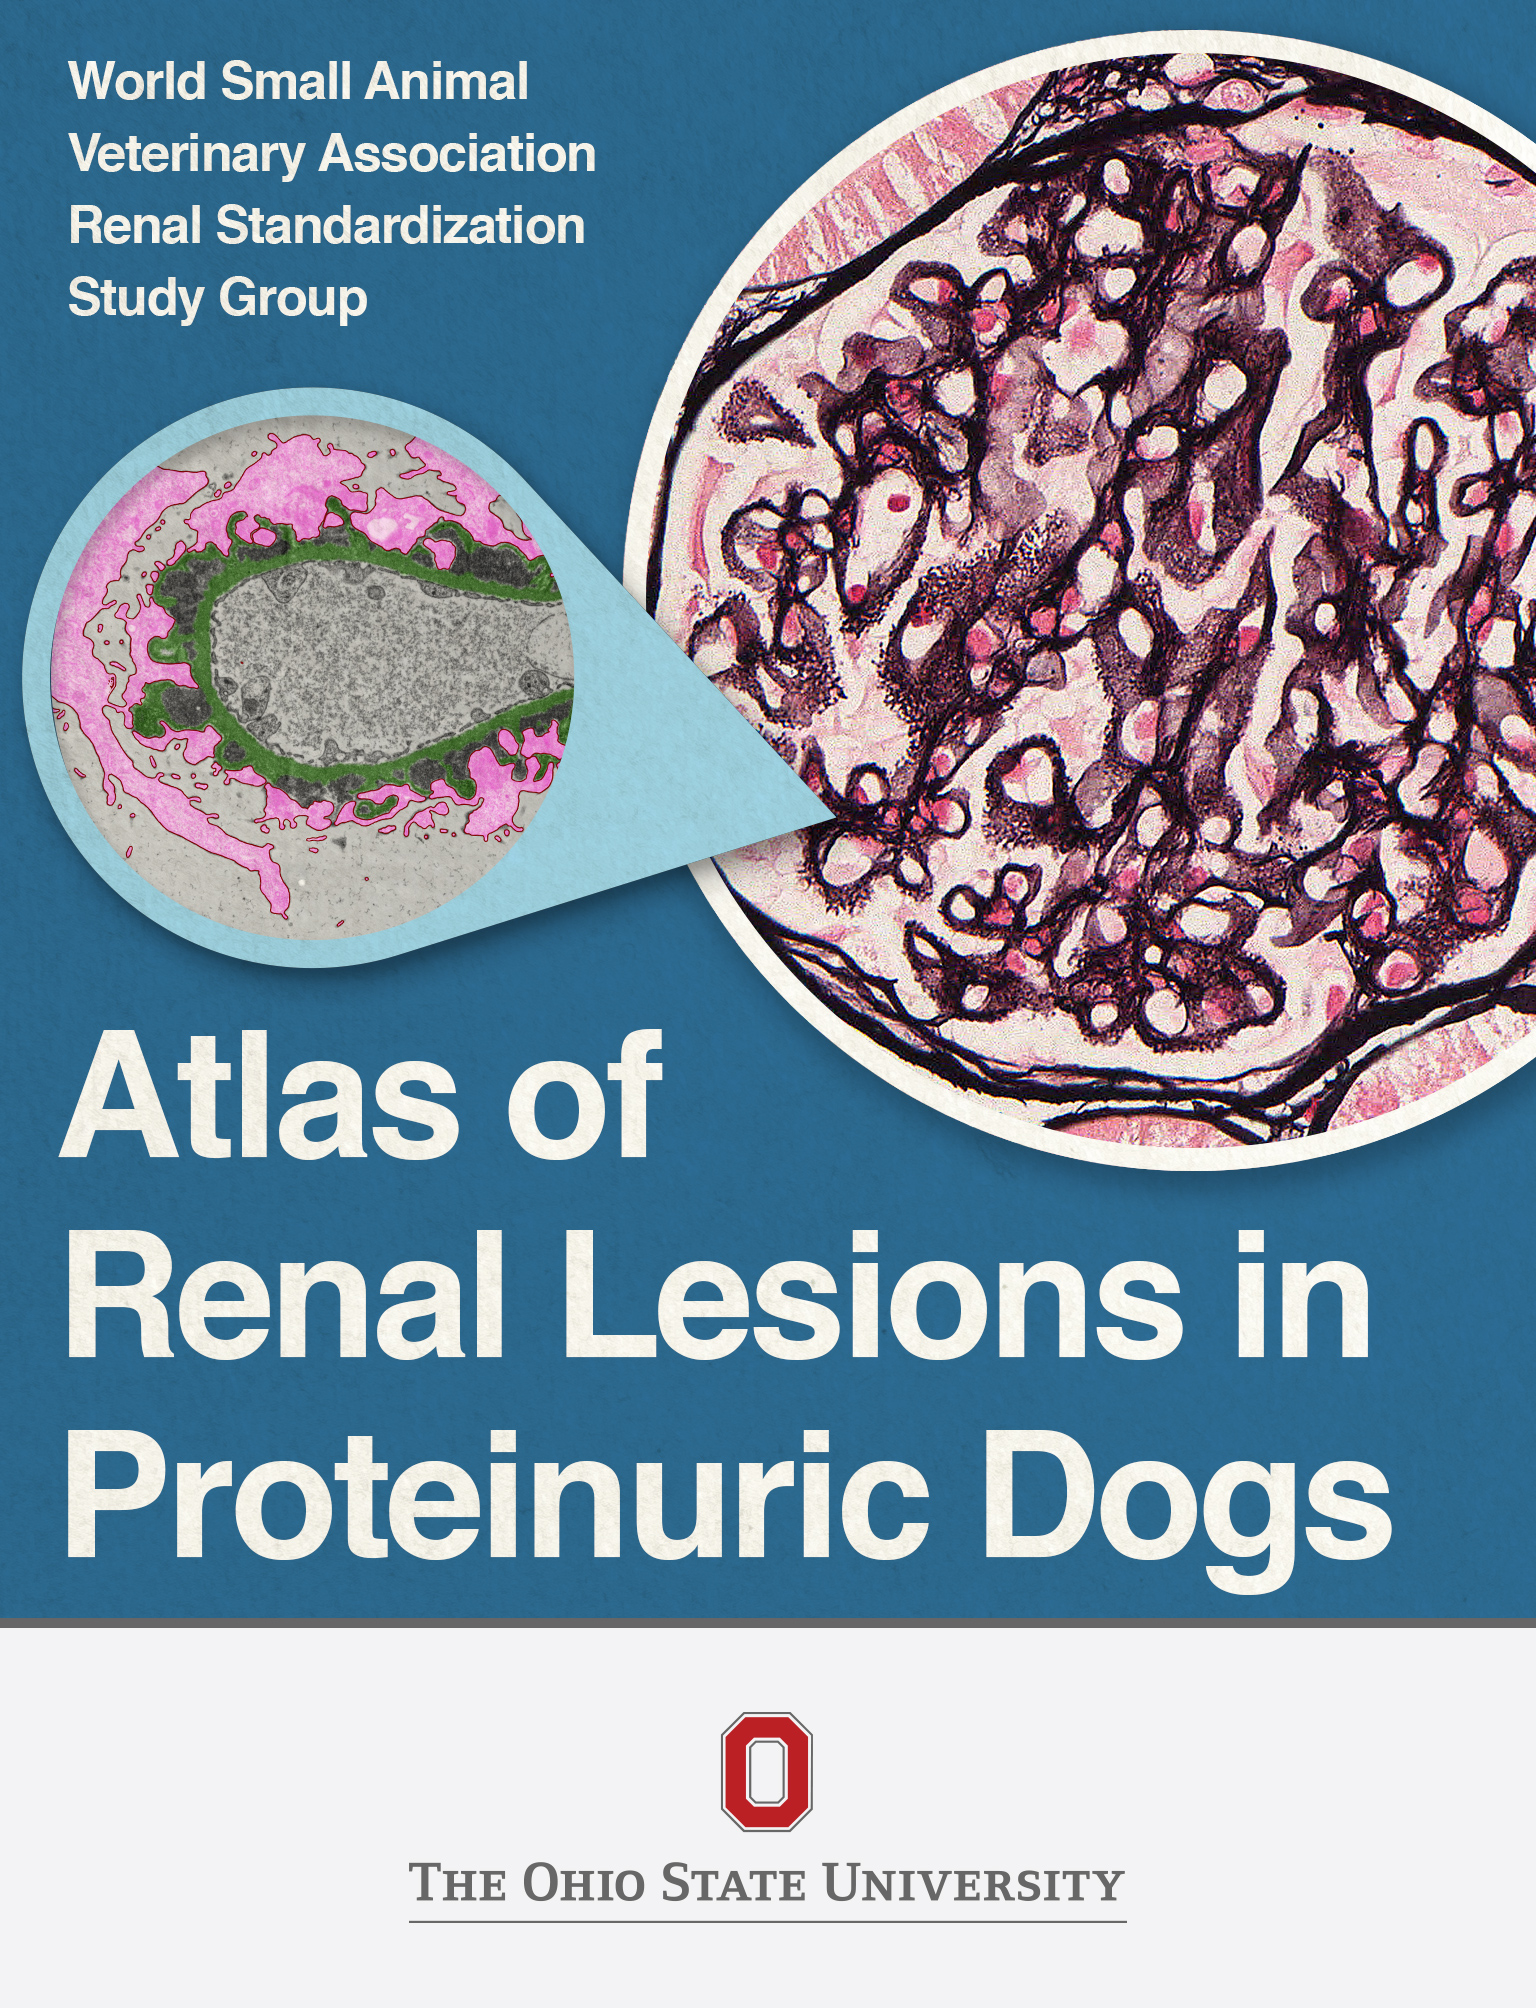 Atlas of Renal Lesions in Proteinuric Dogs – Open Textbook